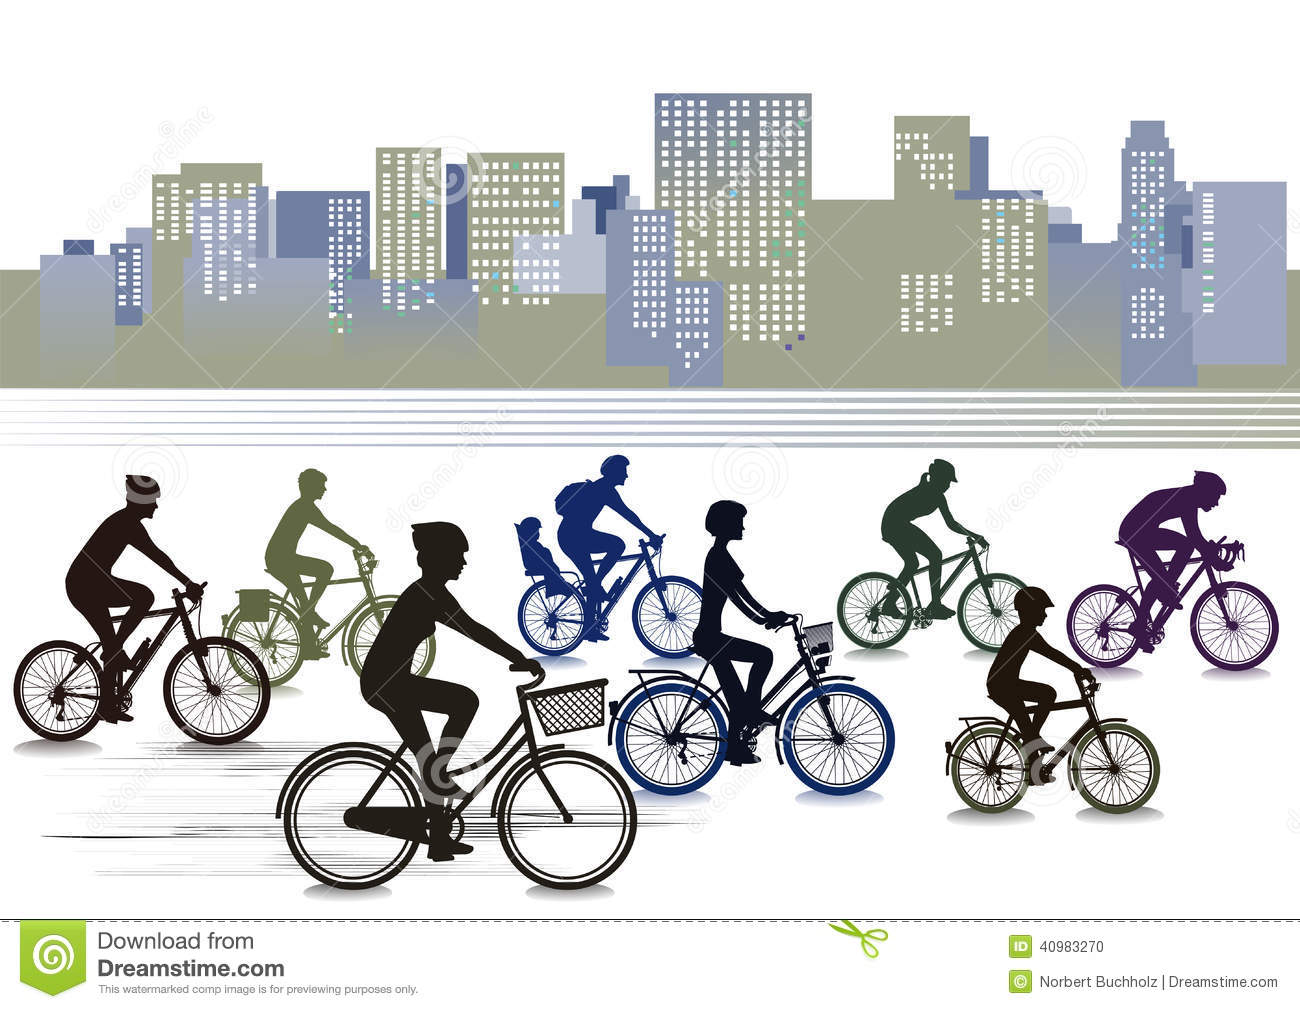 Group cycling clipart.